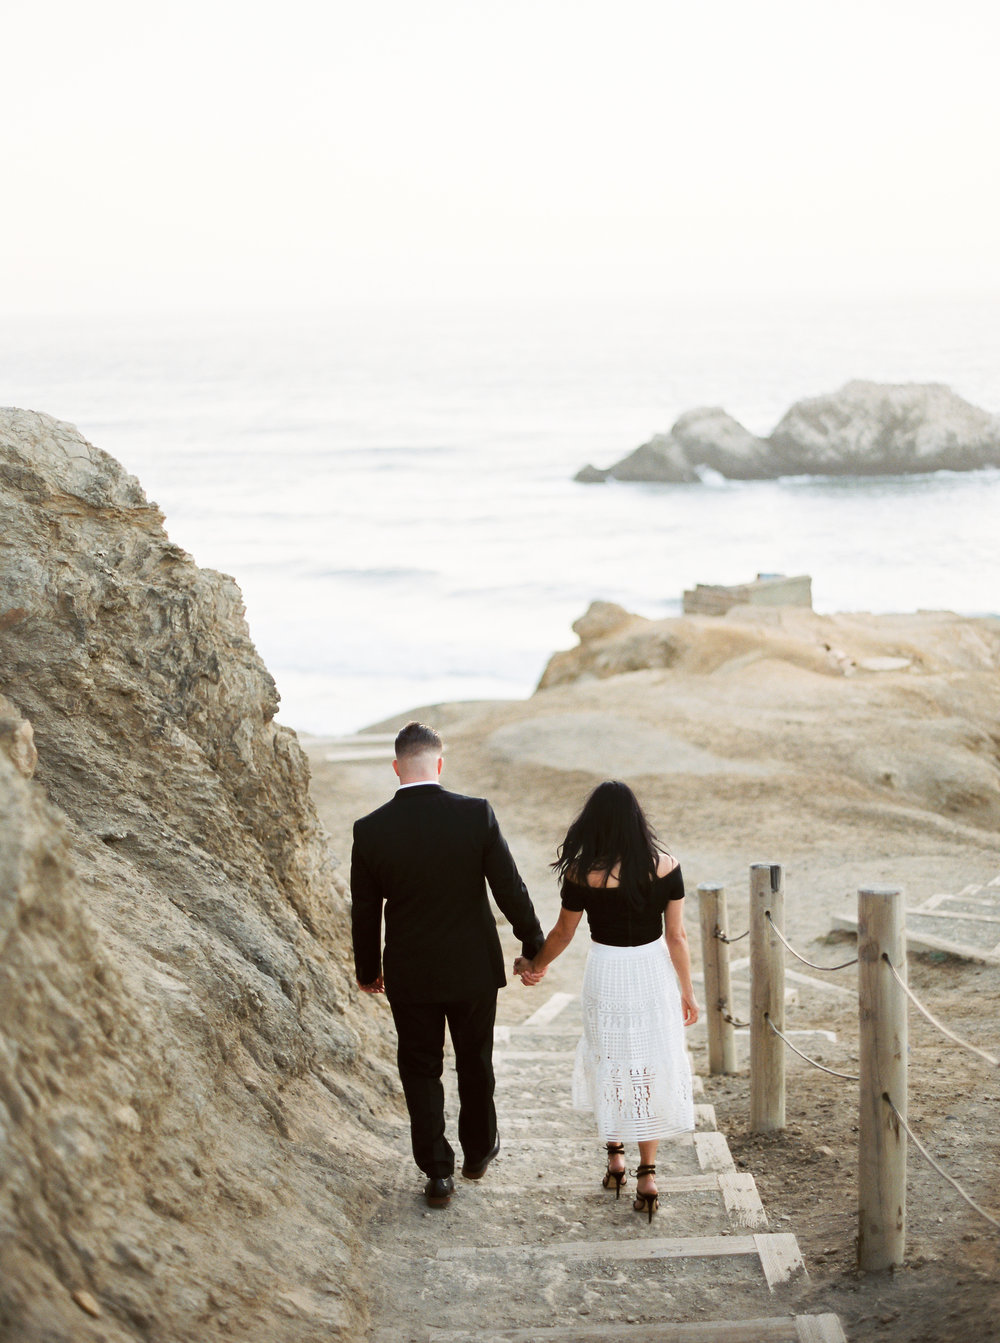 Suto-baths-engagement-photography-38.jpg